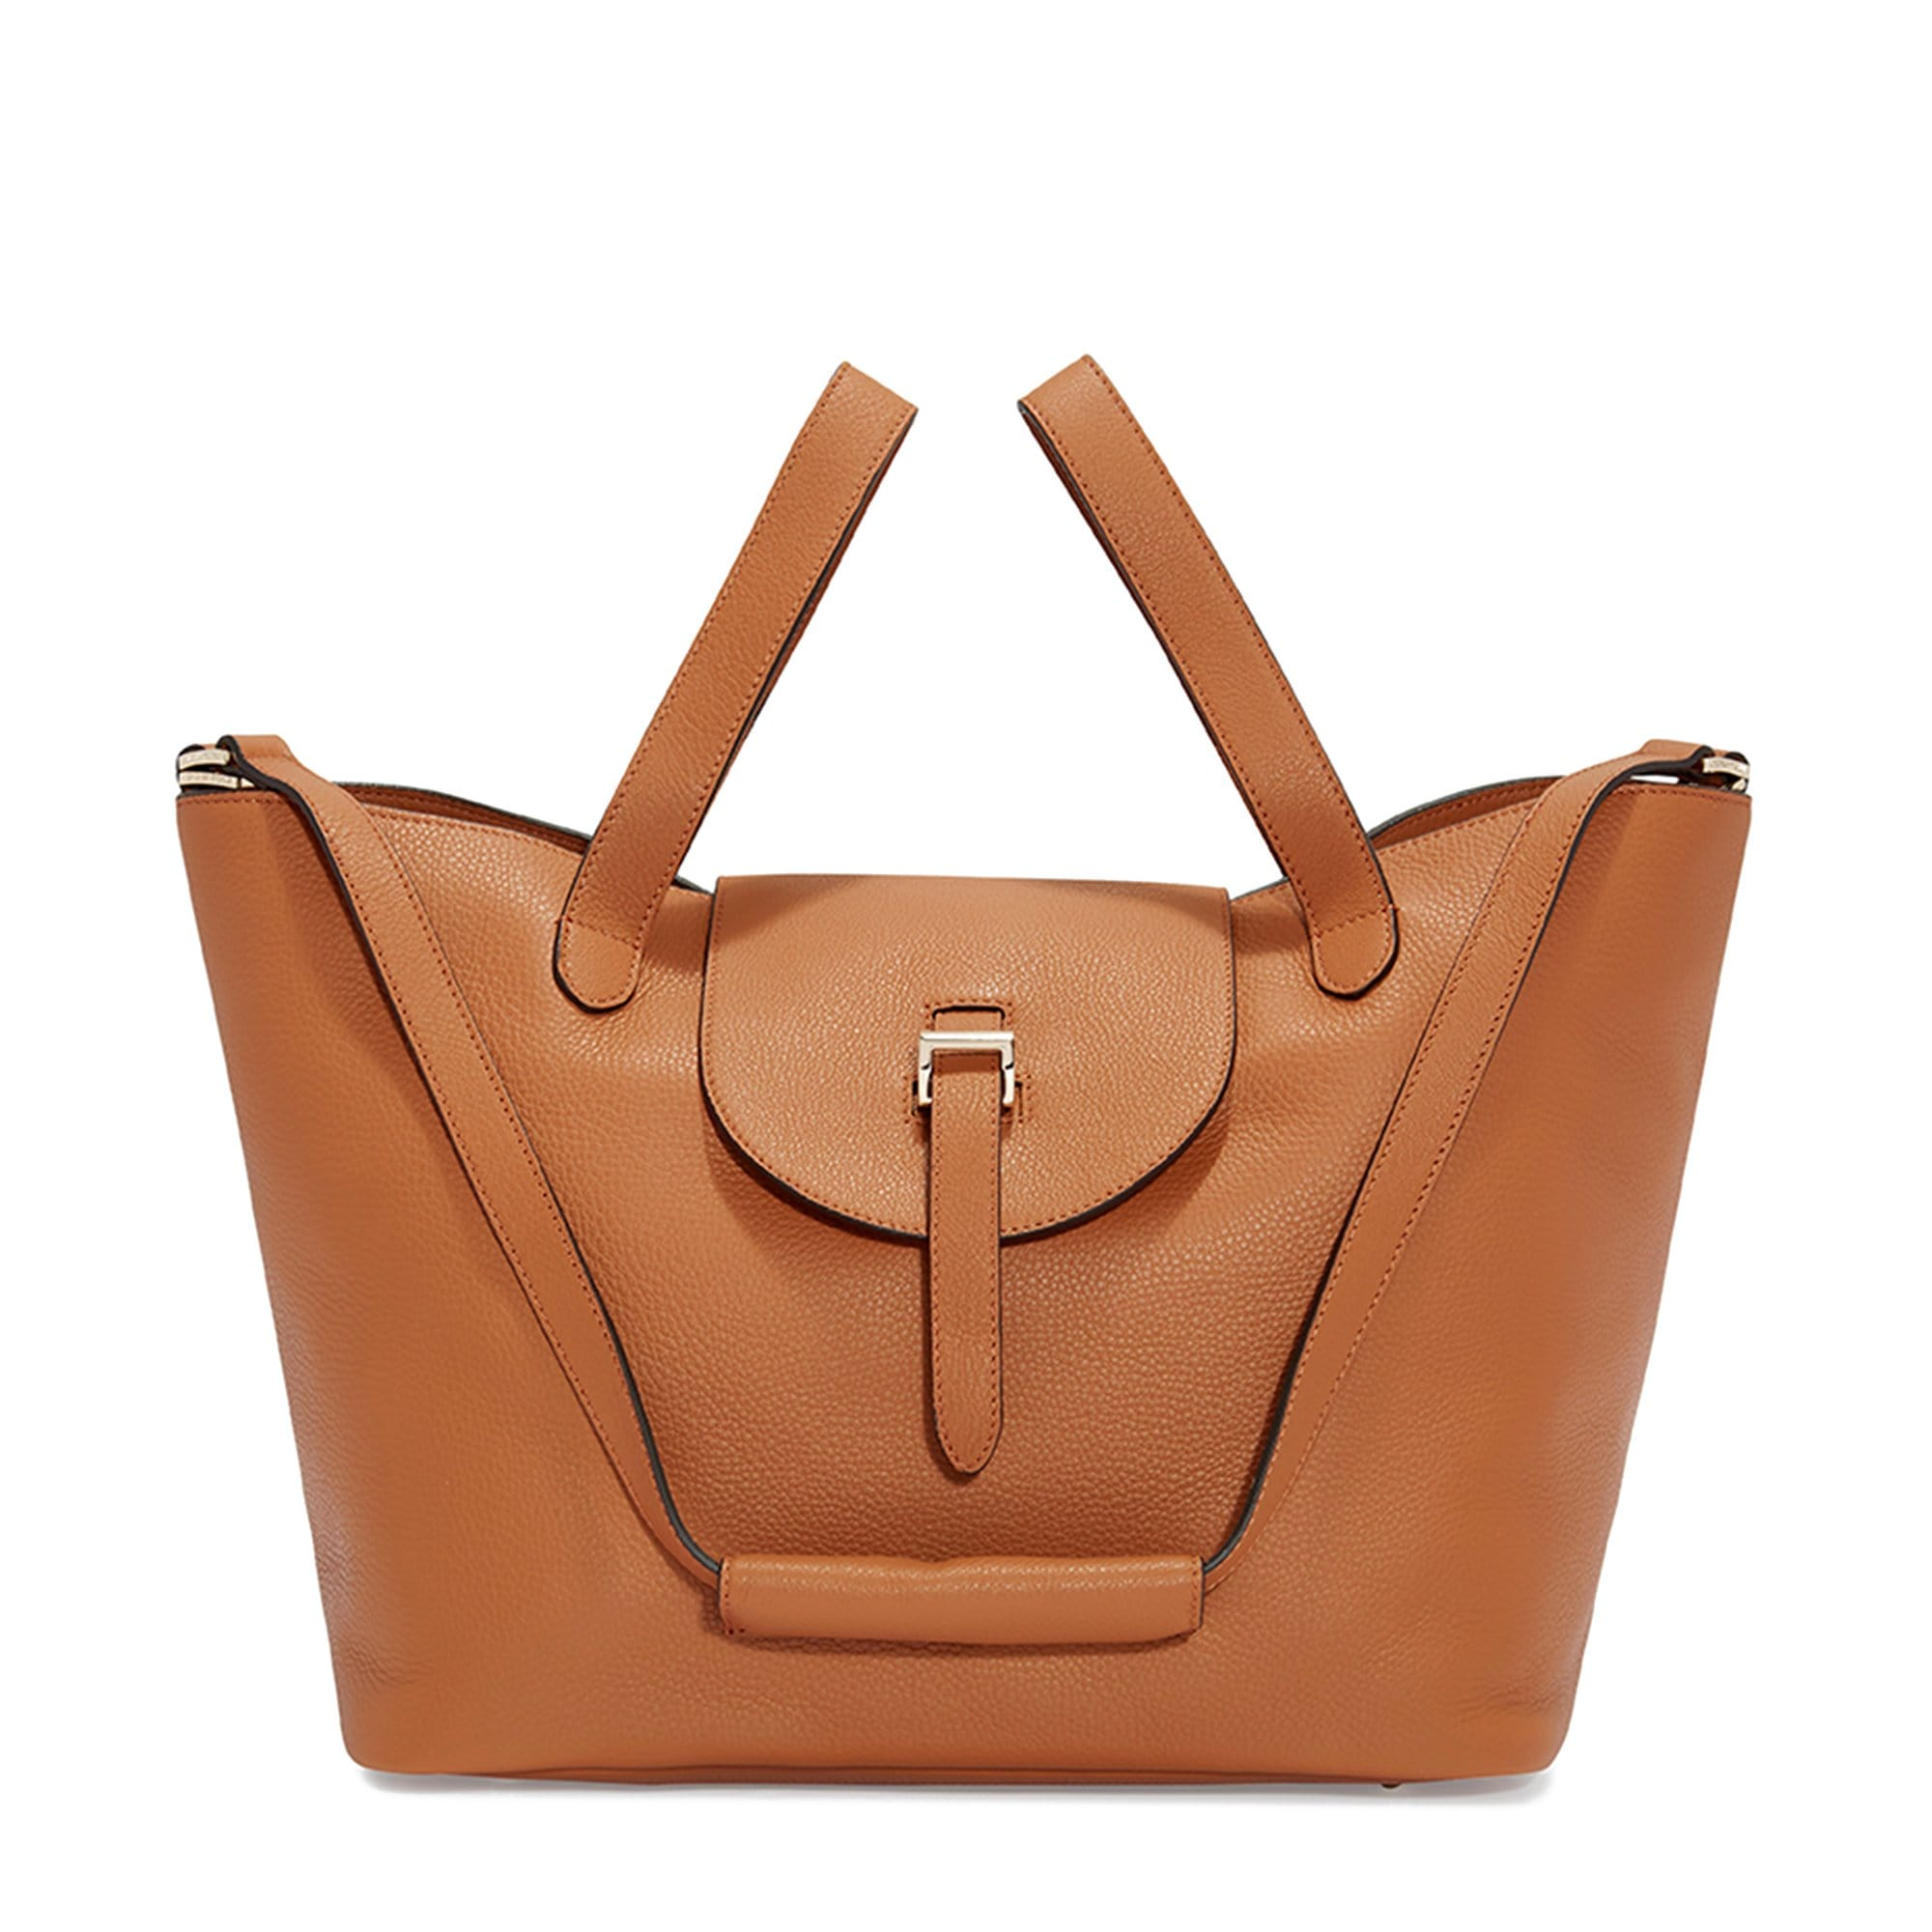 Thela | Tote Bag | Tan